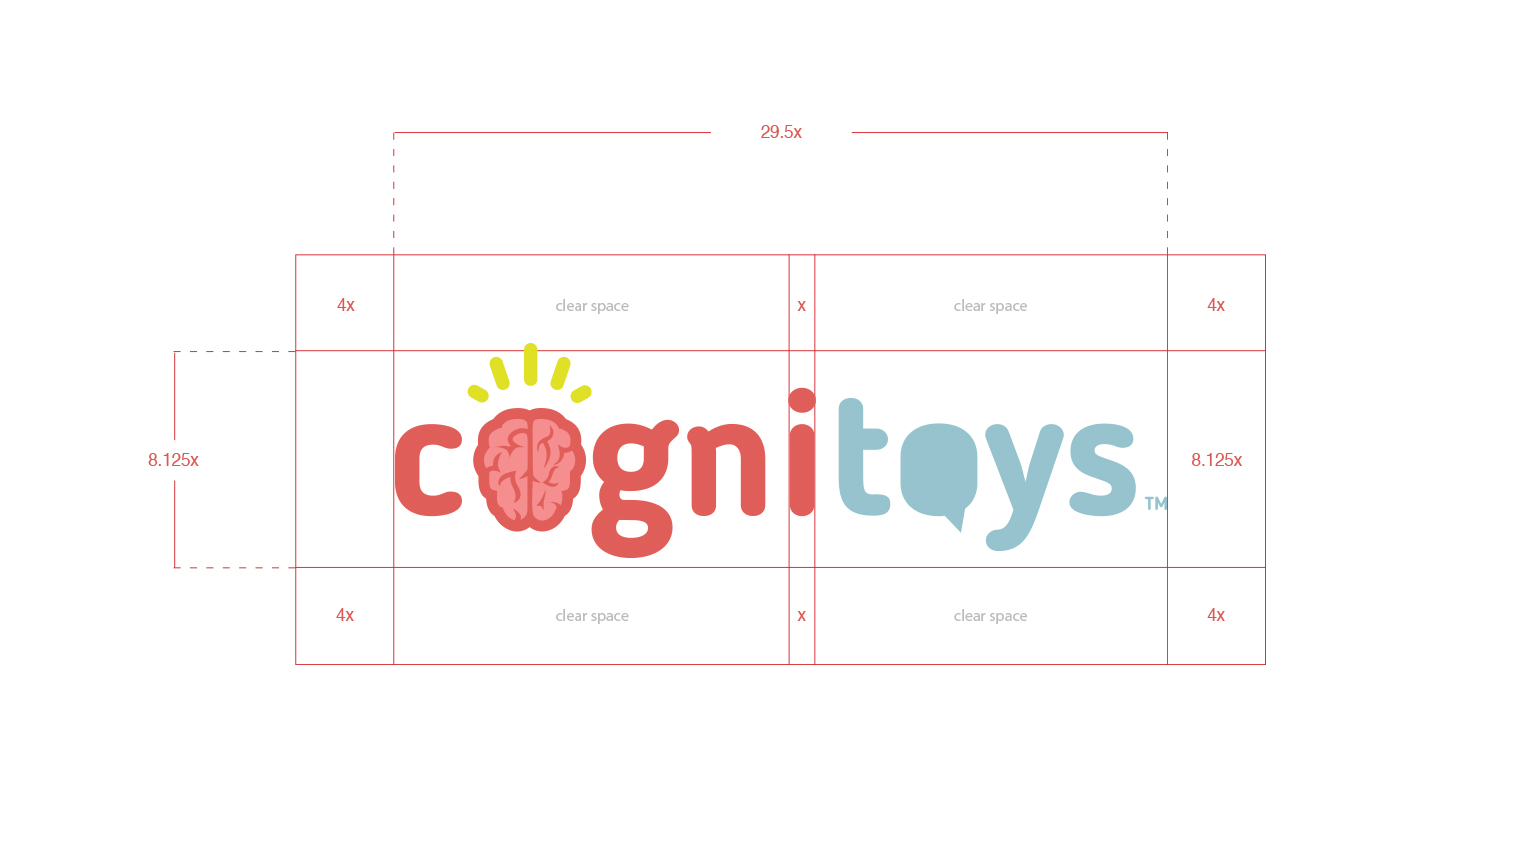 The CogniToys logo design with size guidelines.